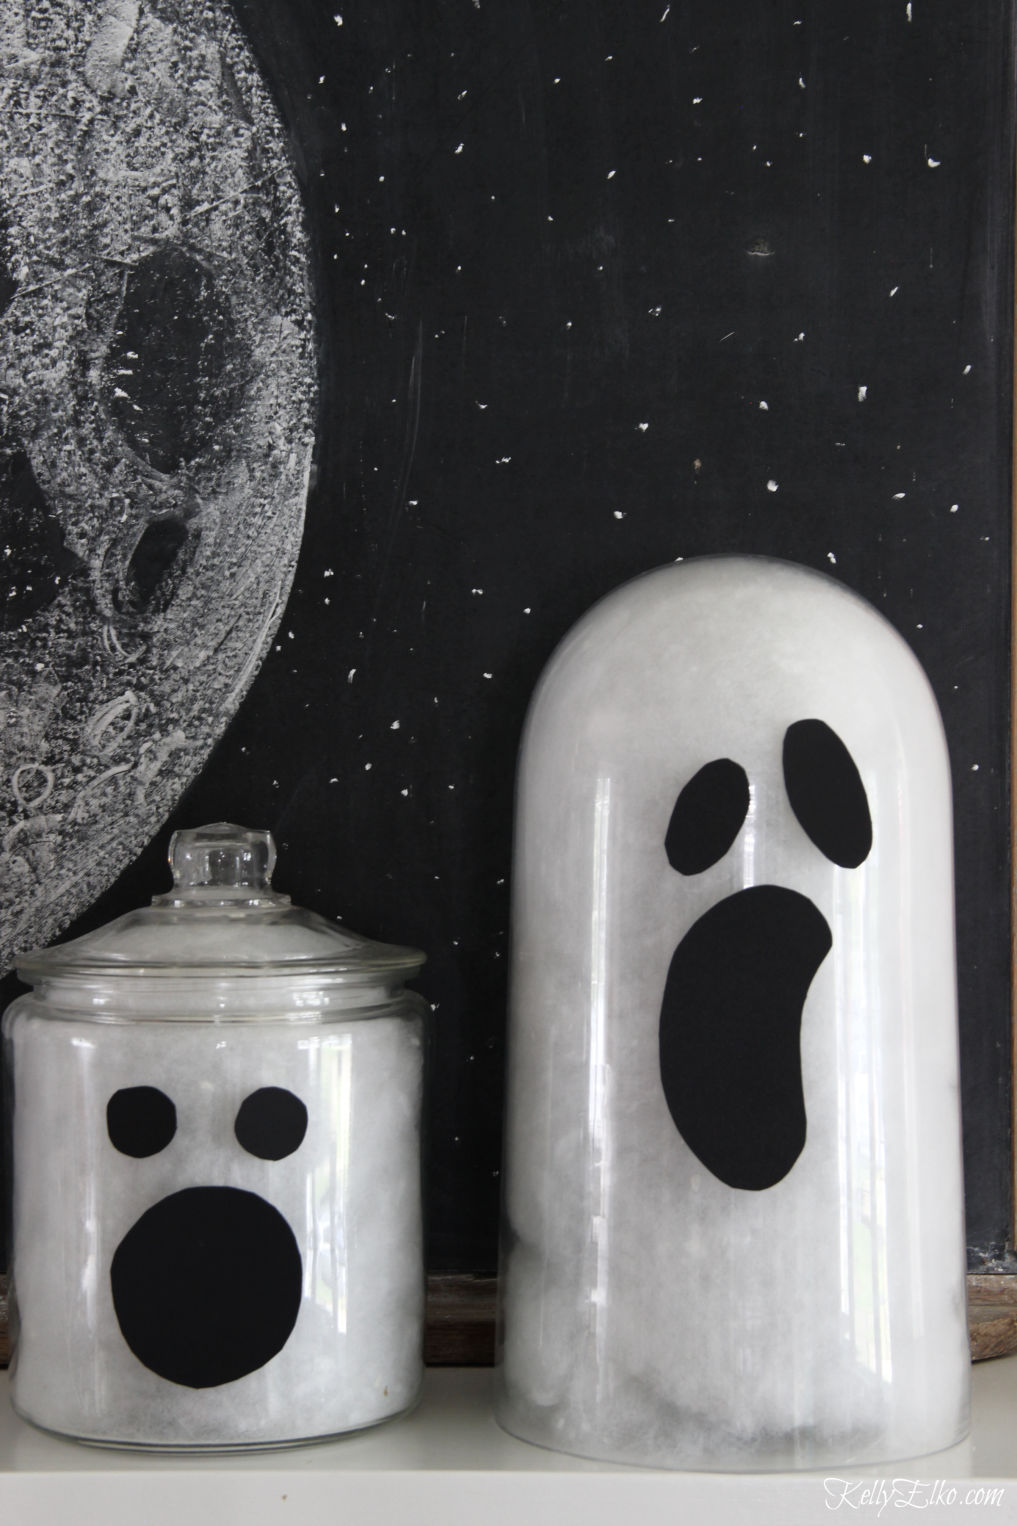 See how to make these cute glass jar ghosts for Halloween kellyelko.com #ghosts #halloweendecor #halloweendecorations #diyhalloween #halloweencrafts #halloweenmantel